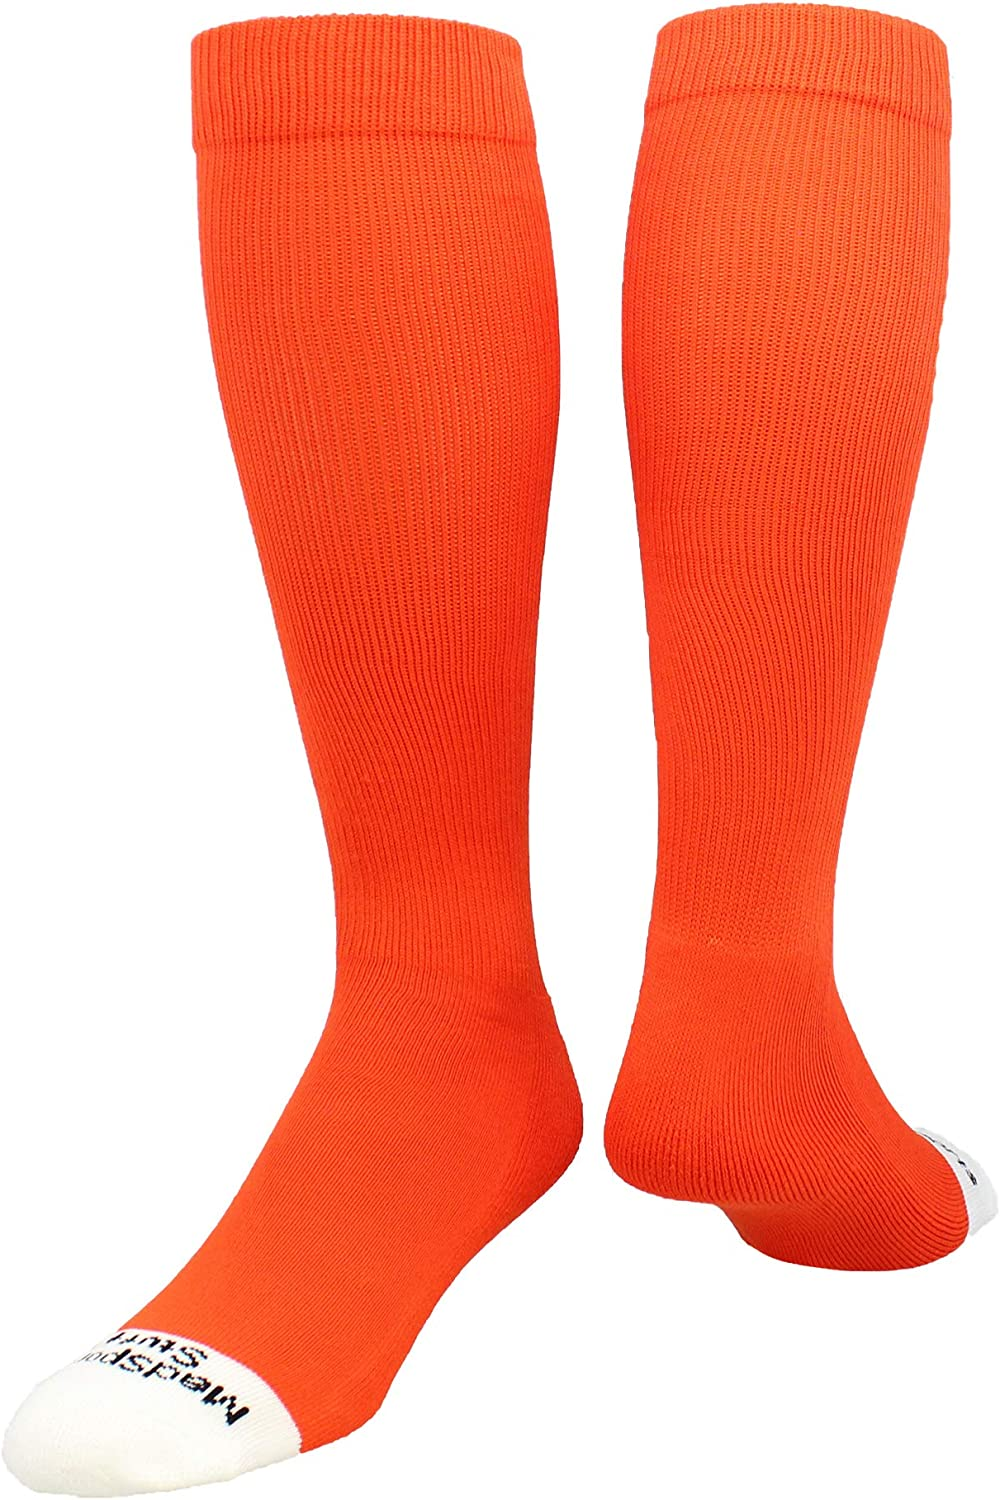 Dealing full price reduction excellence MadSportsStuff Pro Line Over The Calf Socks Football